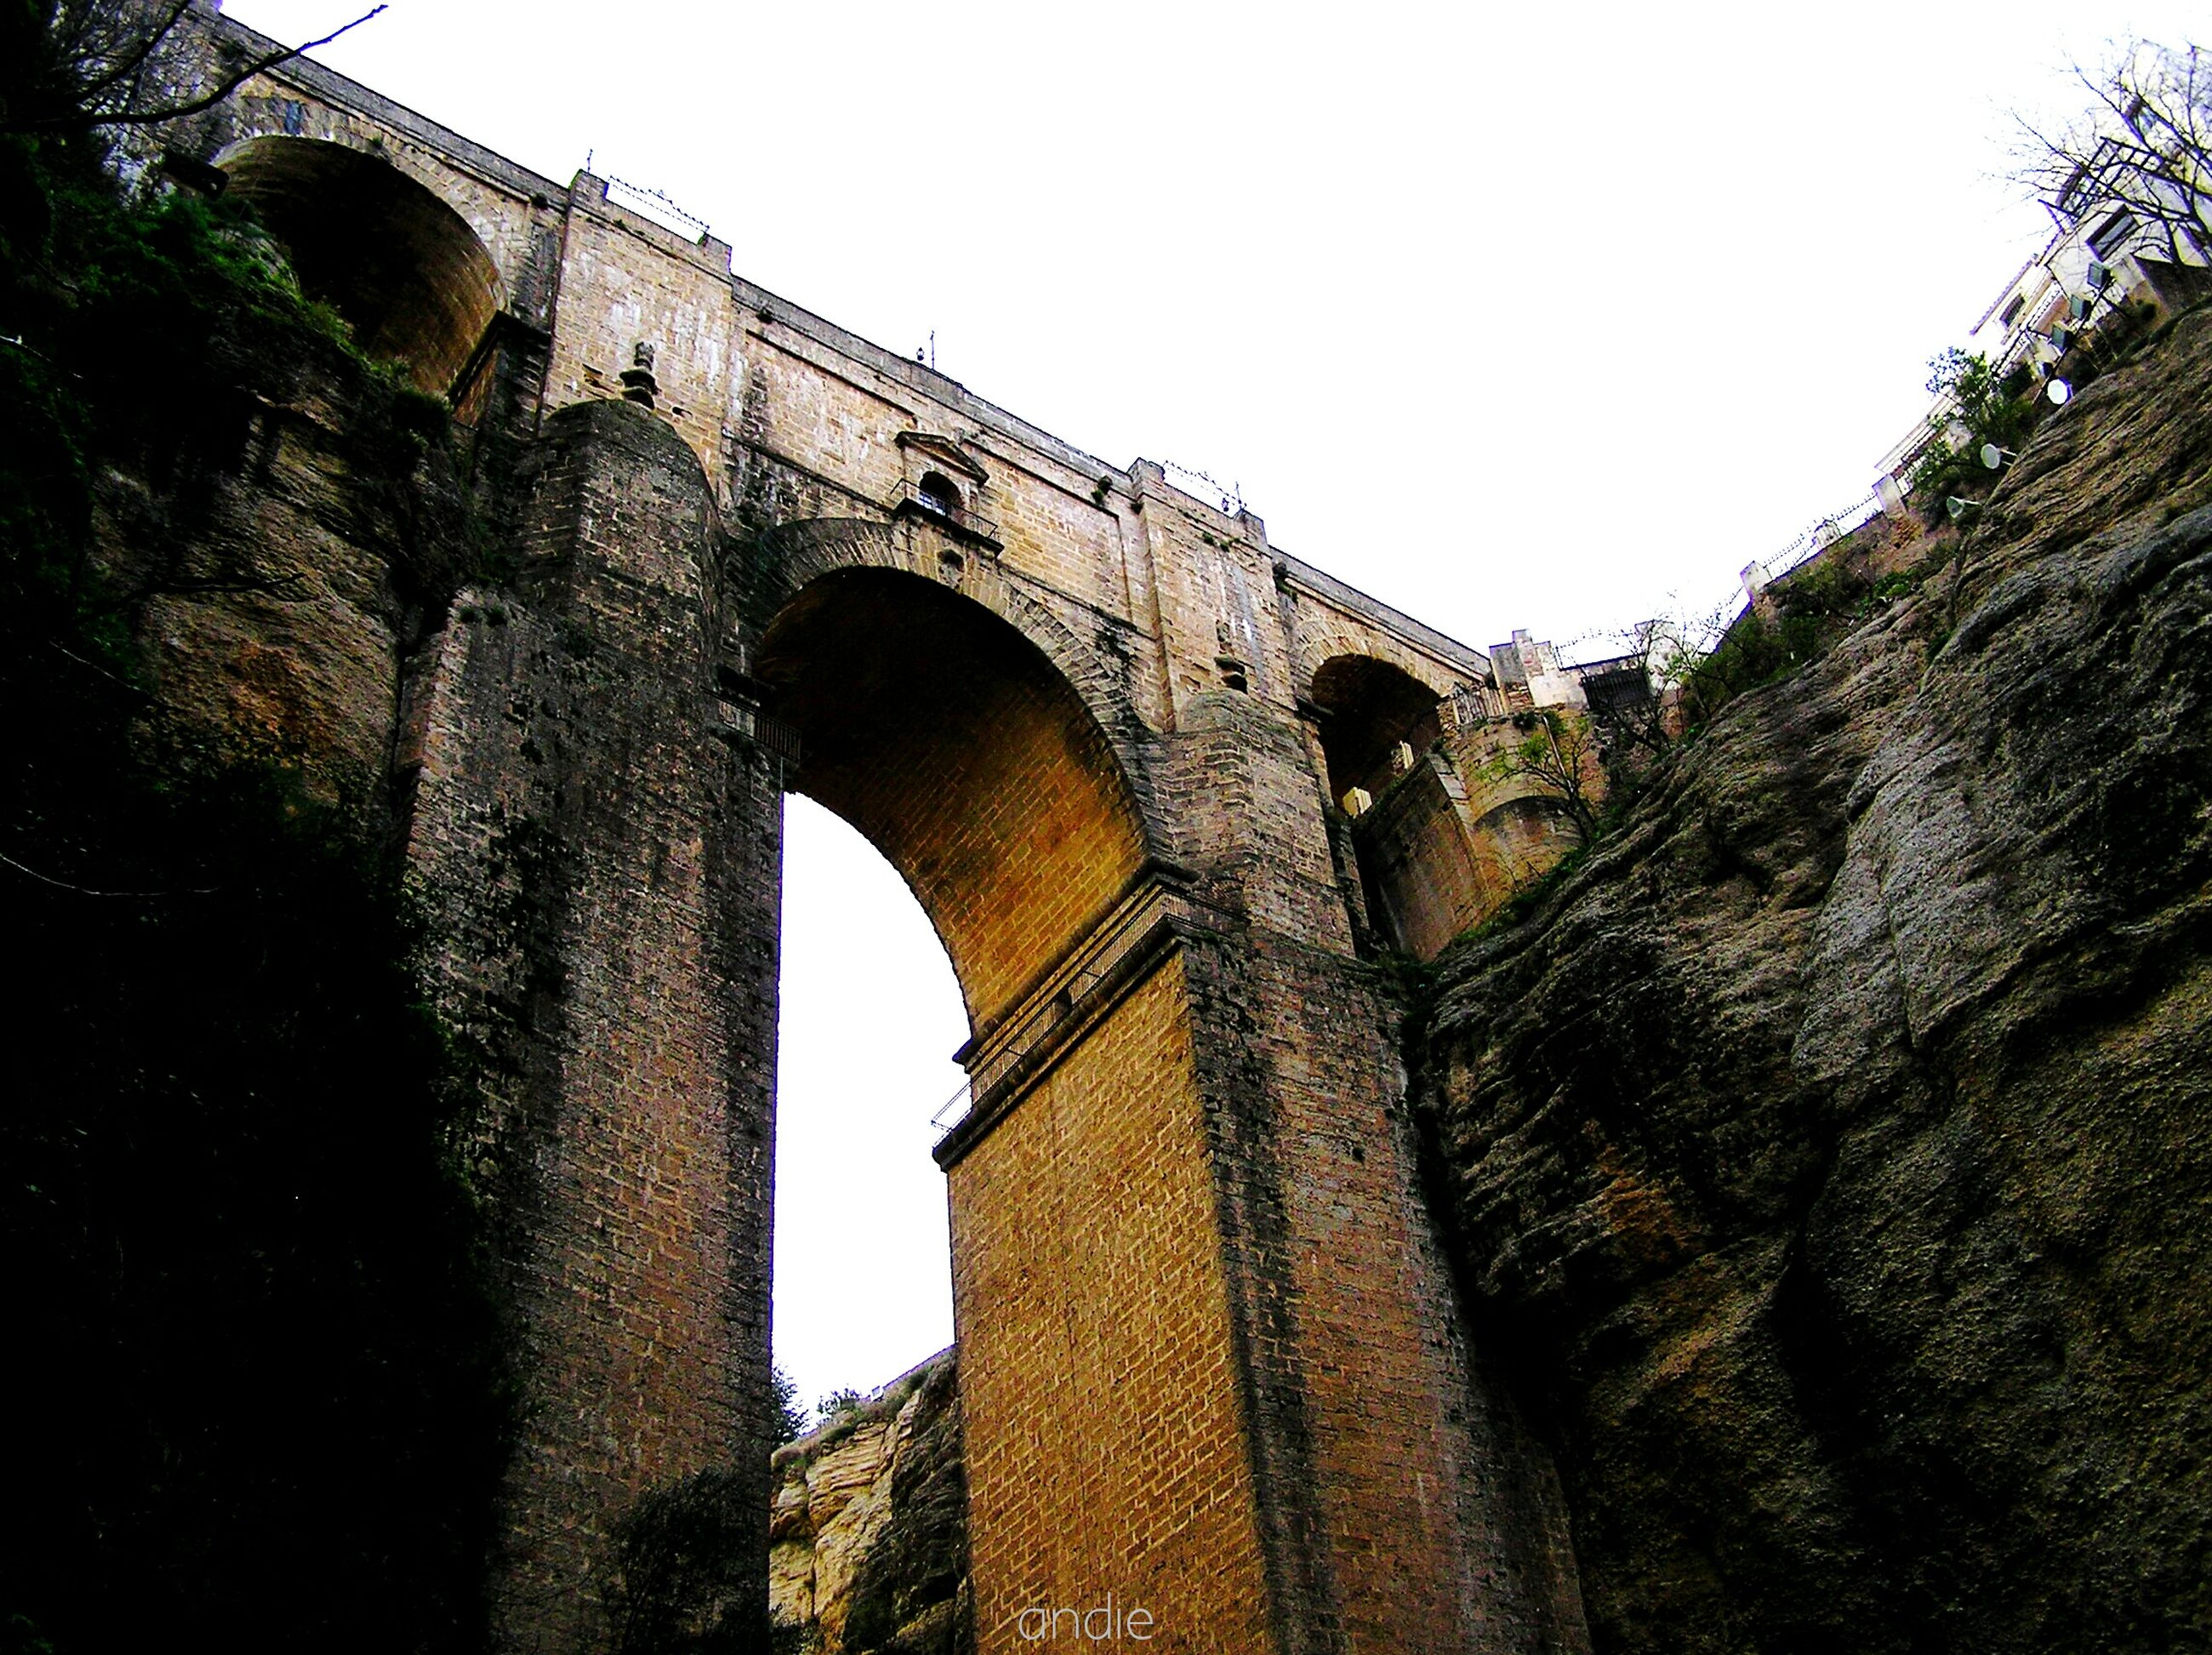 architecture, built structure, arch, clear sky, low angle view, history, connection, bridge - man made structure, old, building exterior, tree, old ruin, stone wall, arch bridge, sky, day, outdoors, no people, the past, ancient